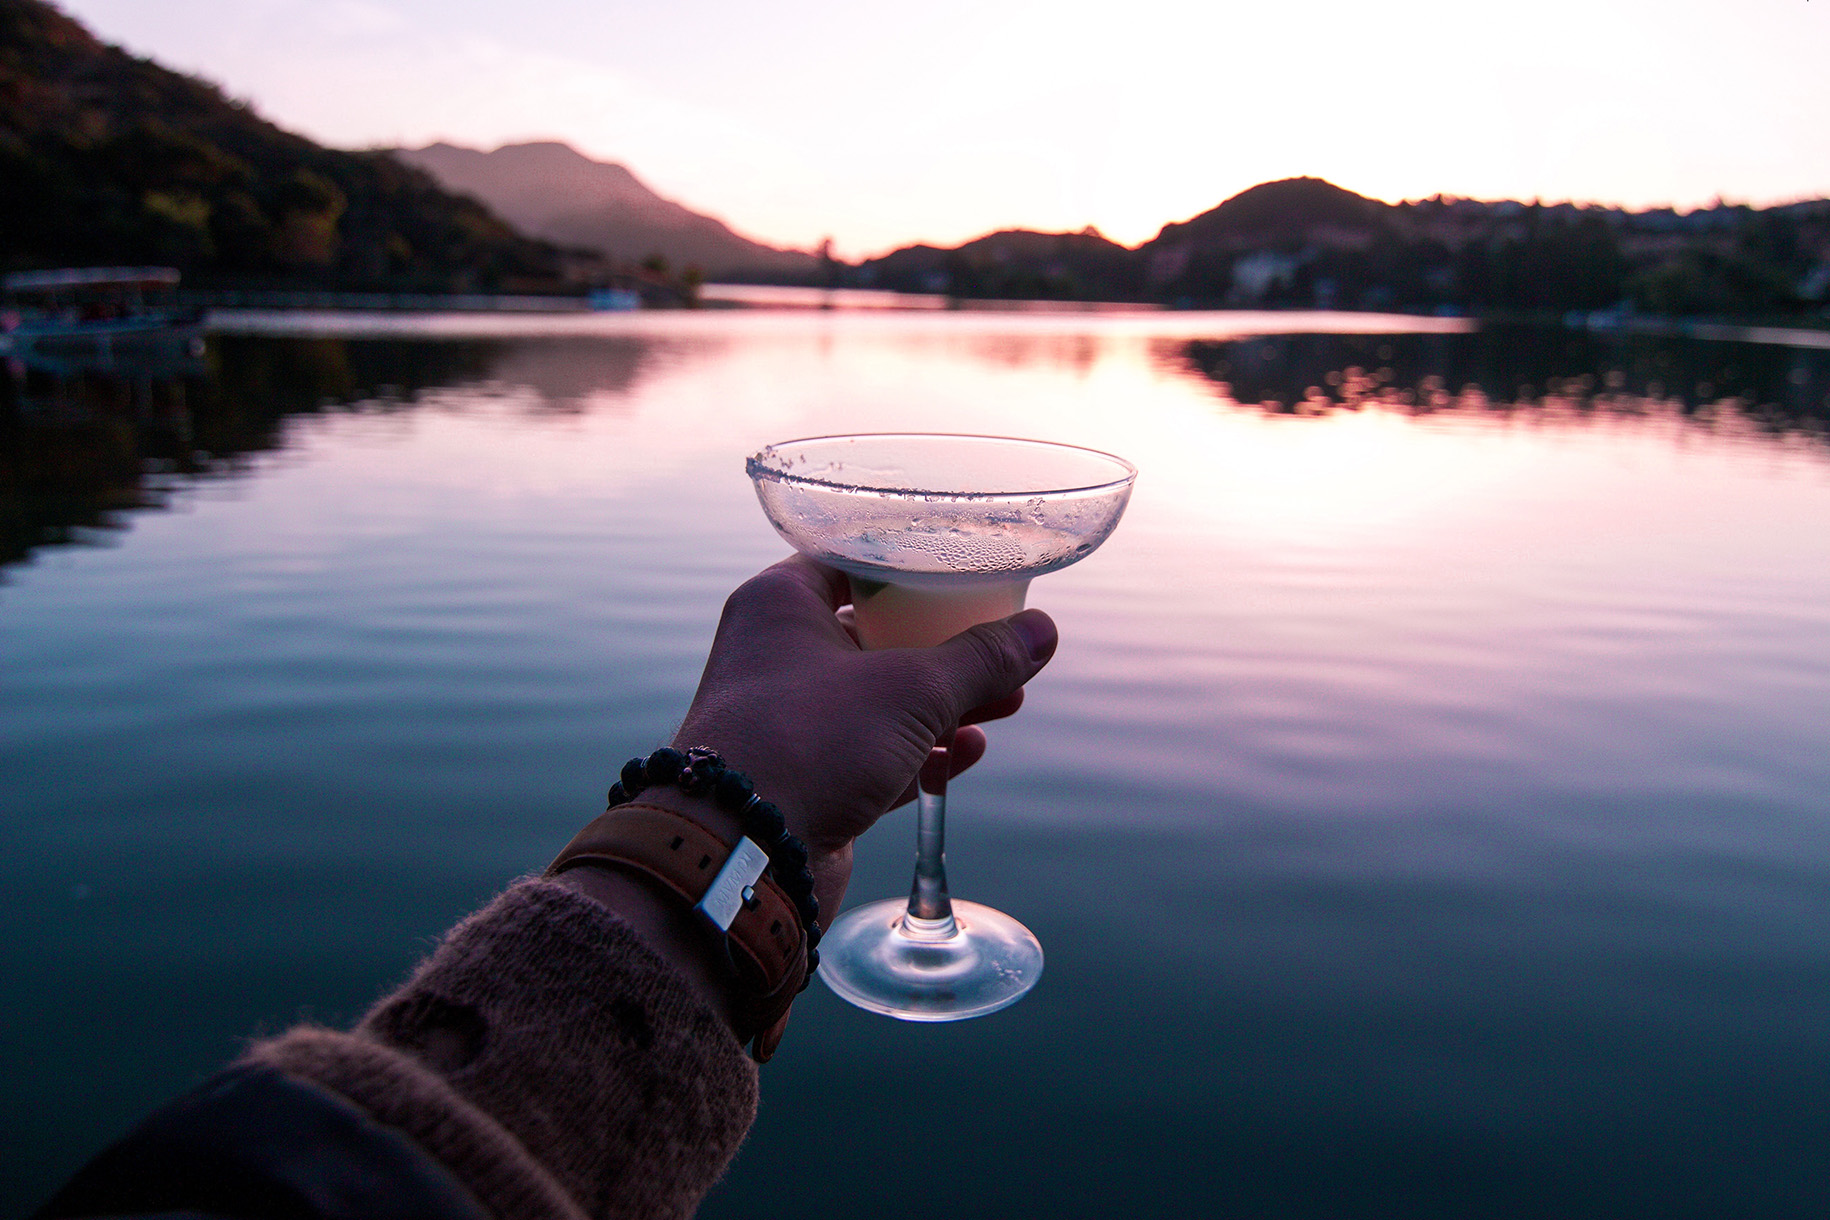 man holding glass in front of body of water at dusk